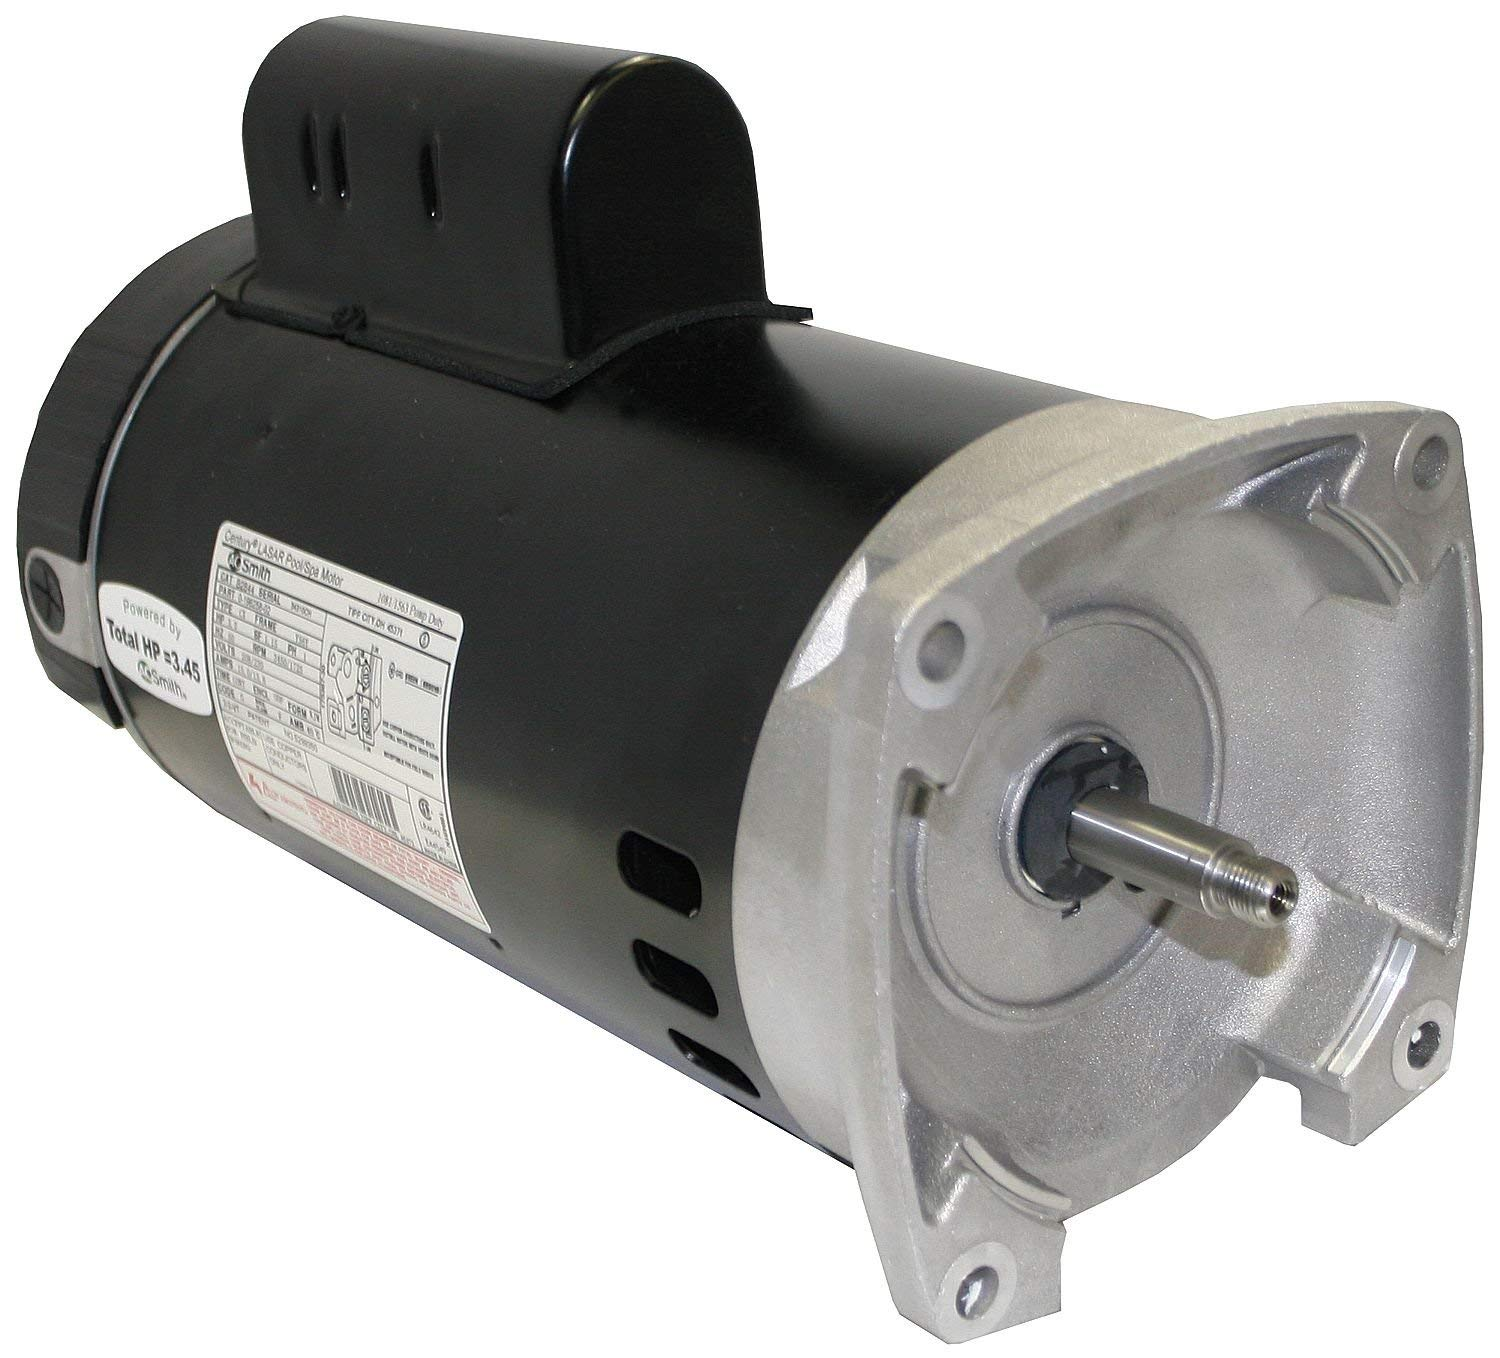 hight resolution of get quotations a o smith b2840 2 5hp 230v pool pump motor 56y frame square flange